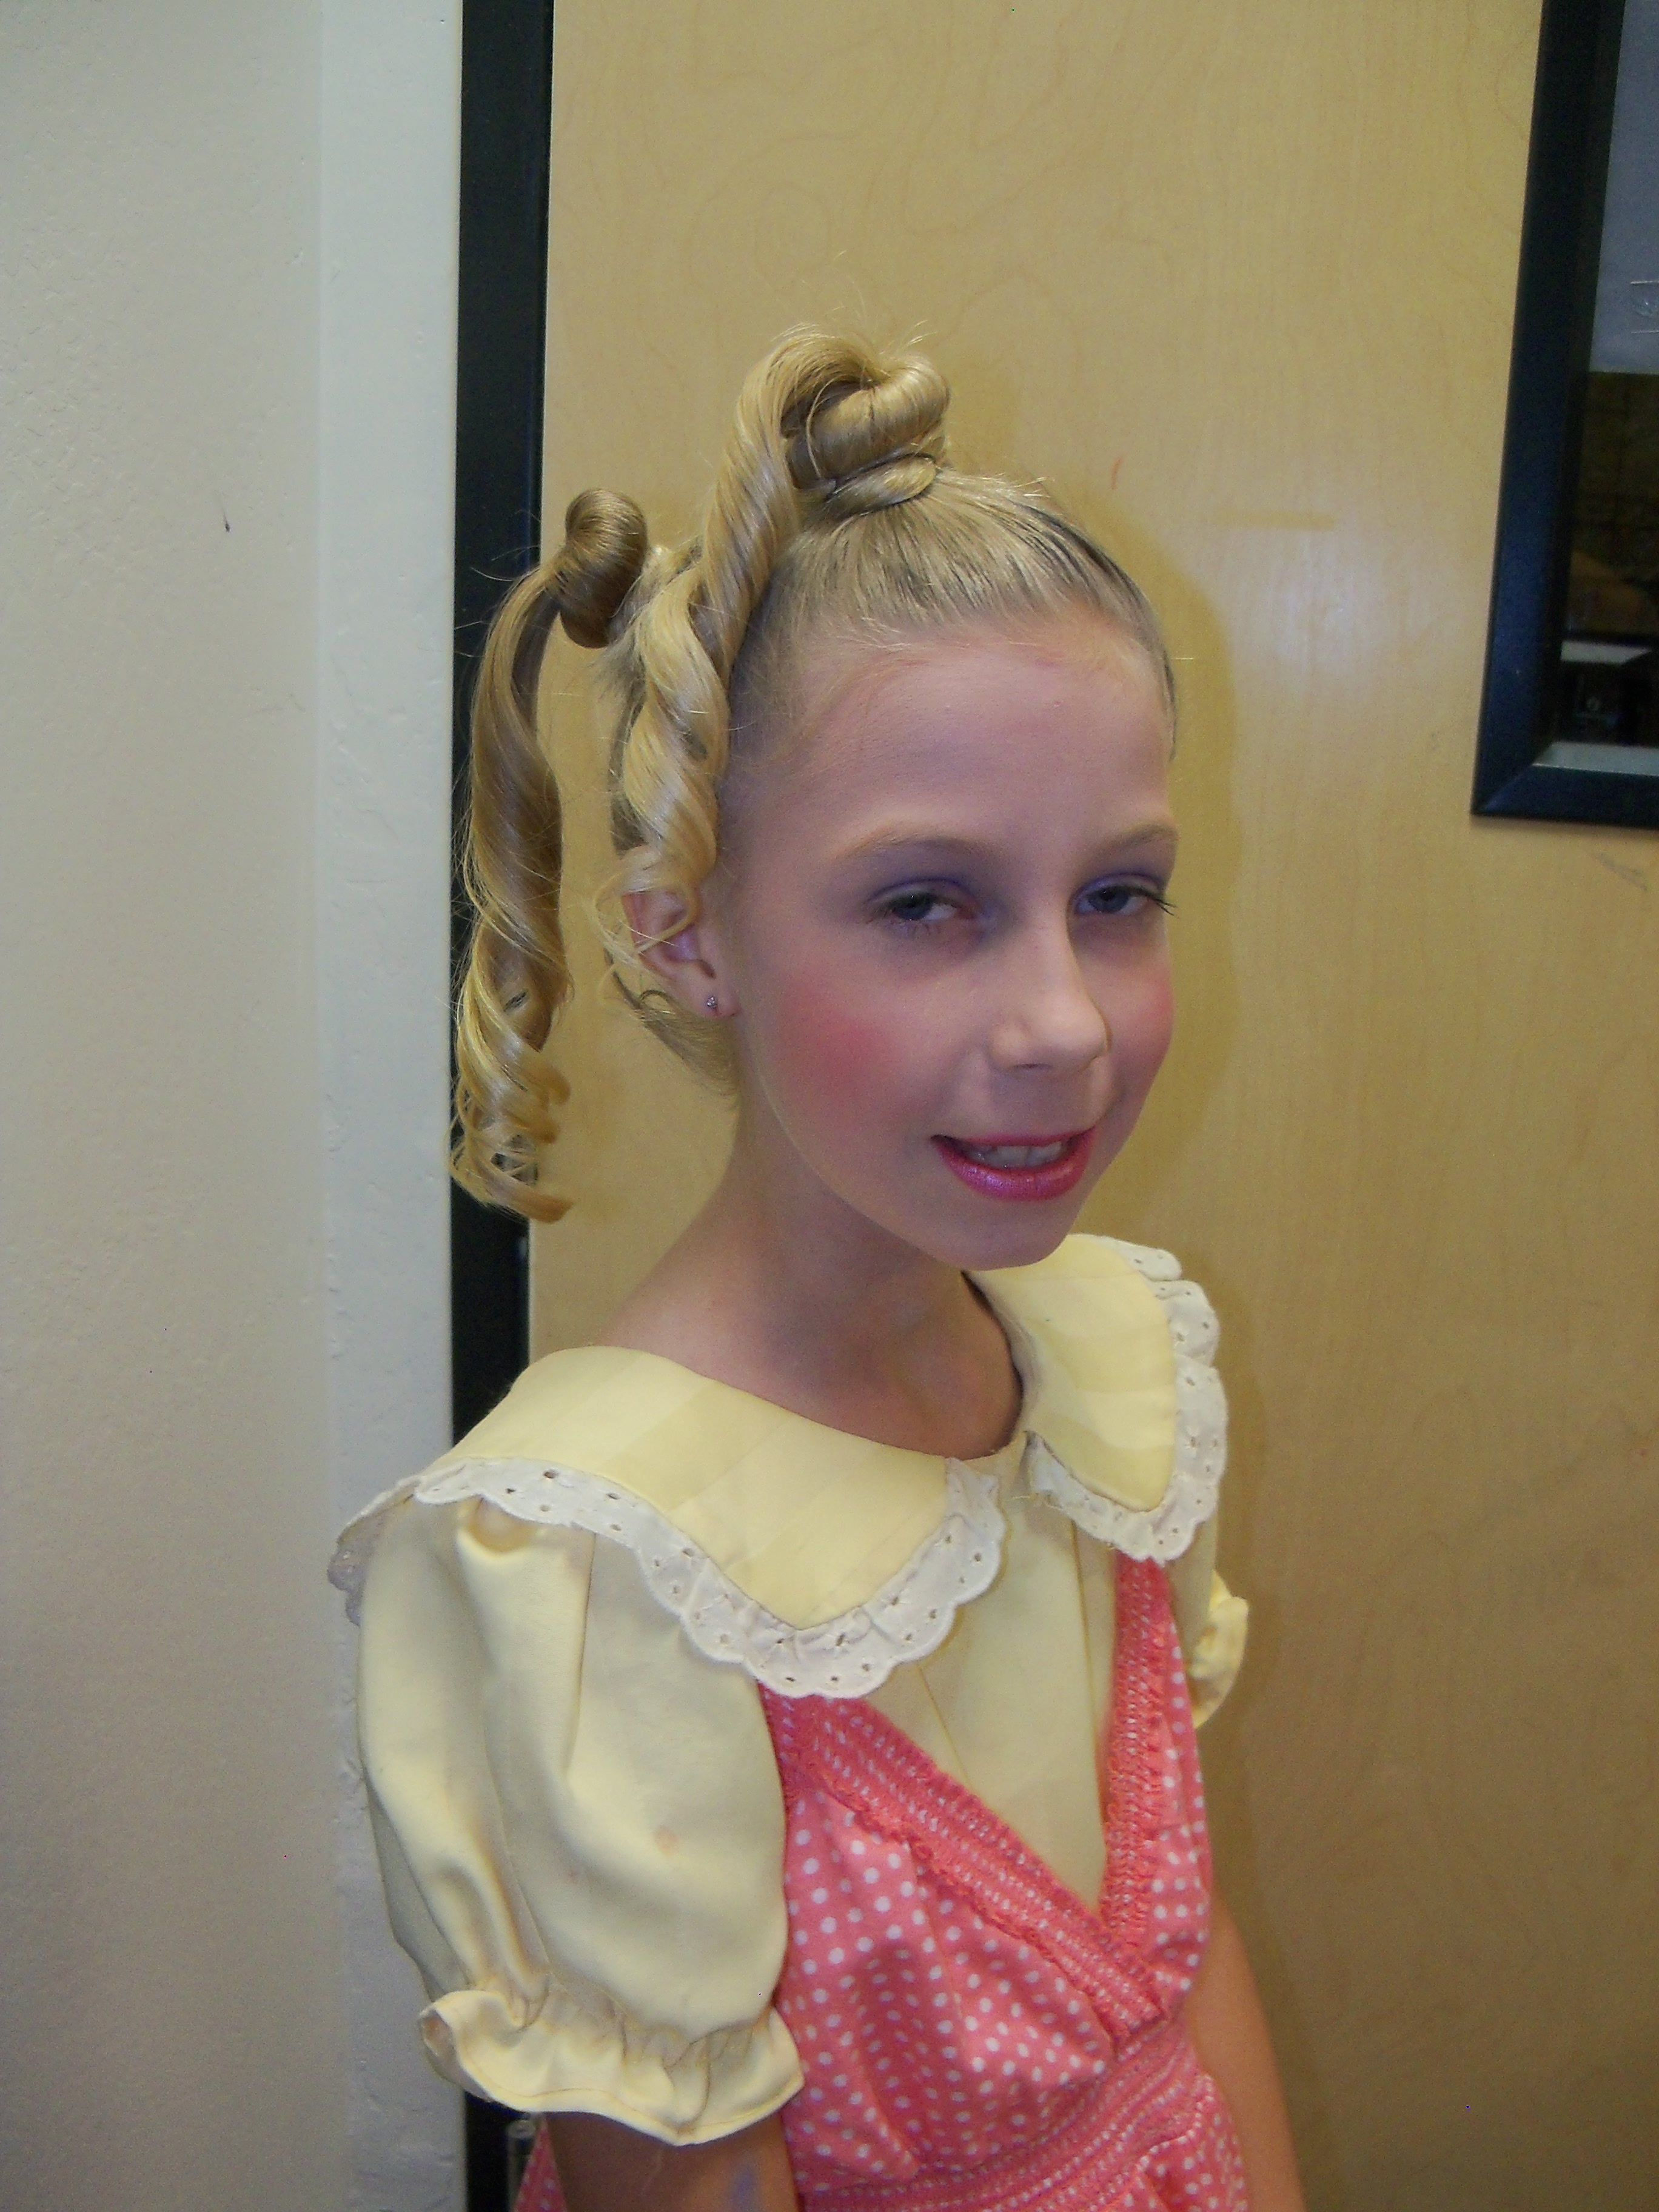 seussical hair - who 2   hairstyles and crazy costumes   pinterest